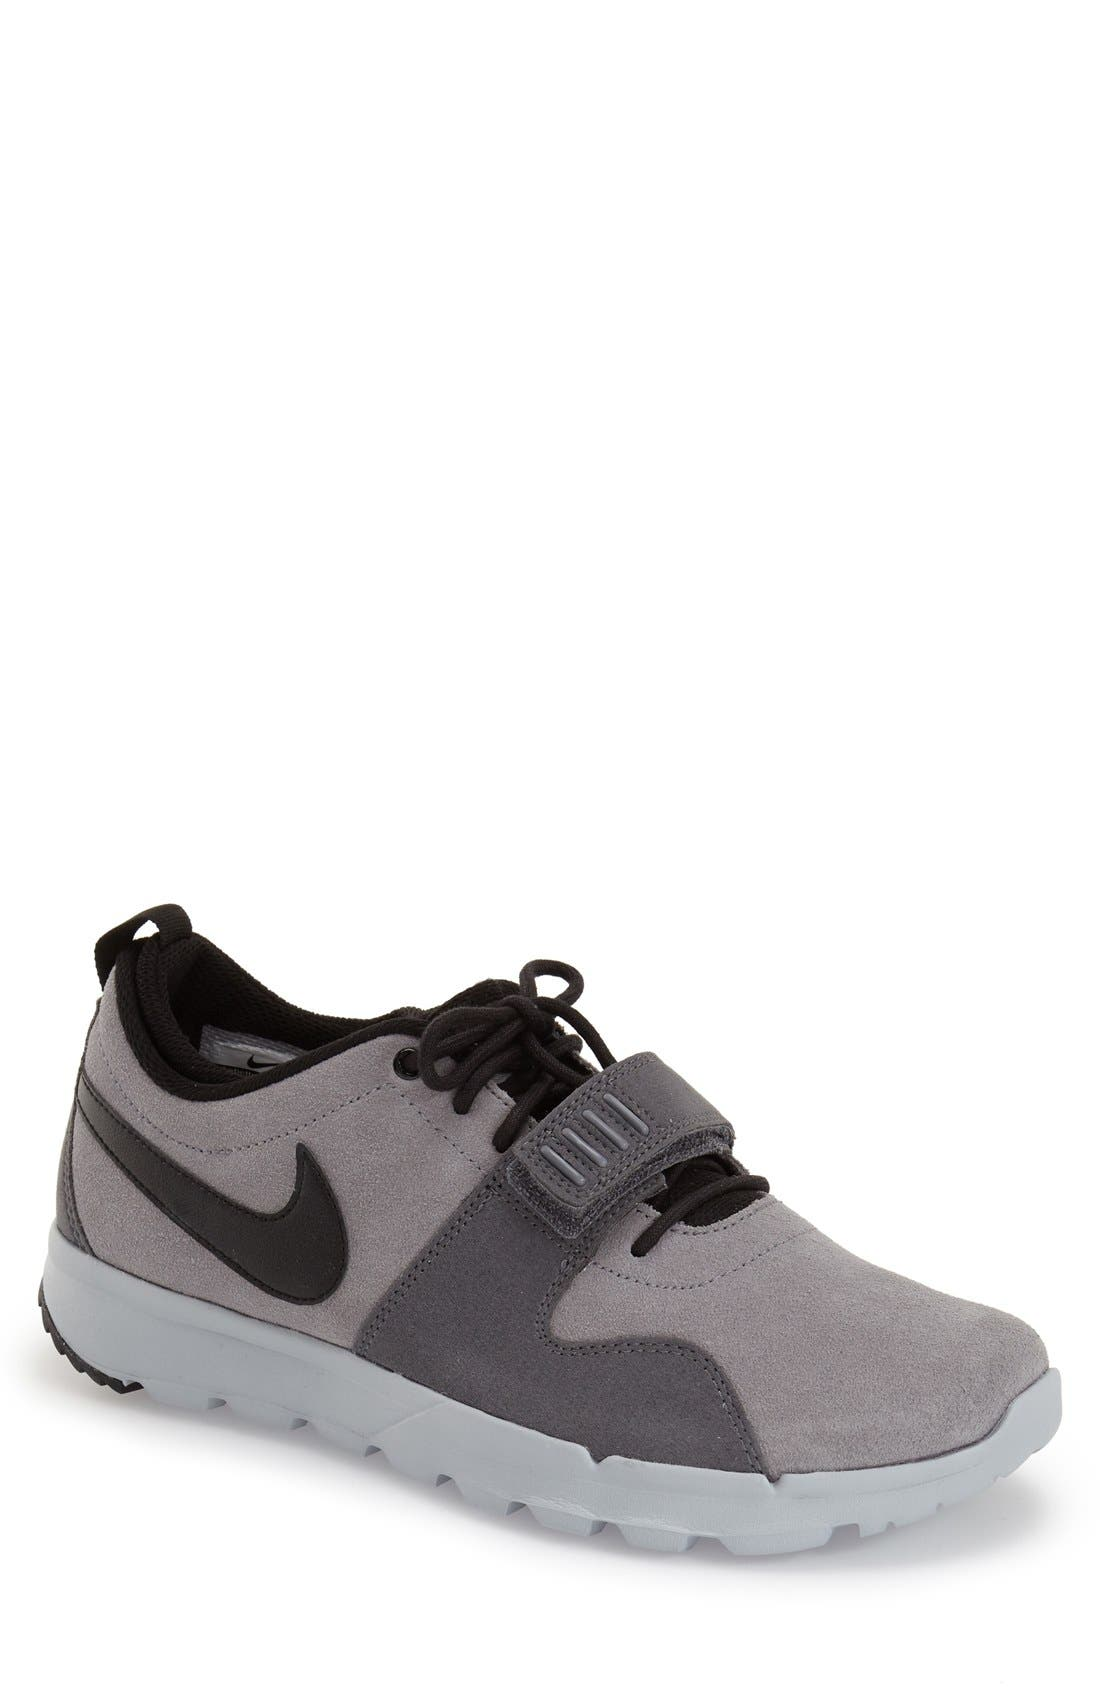 Nike Trainerendor L' Training Shoe (Men)